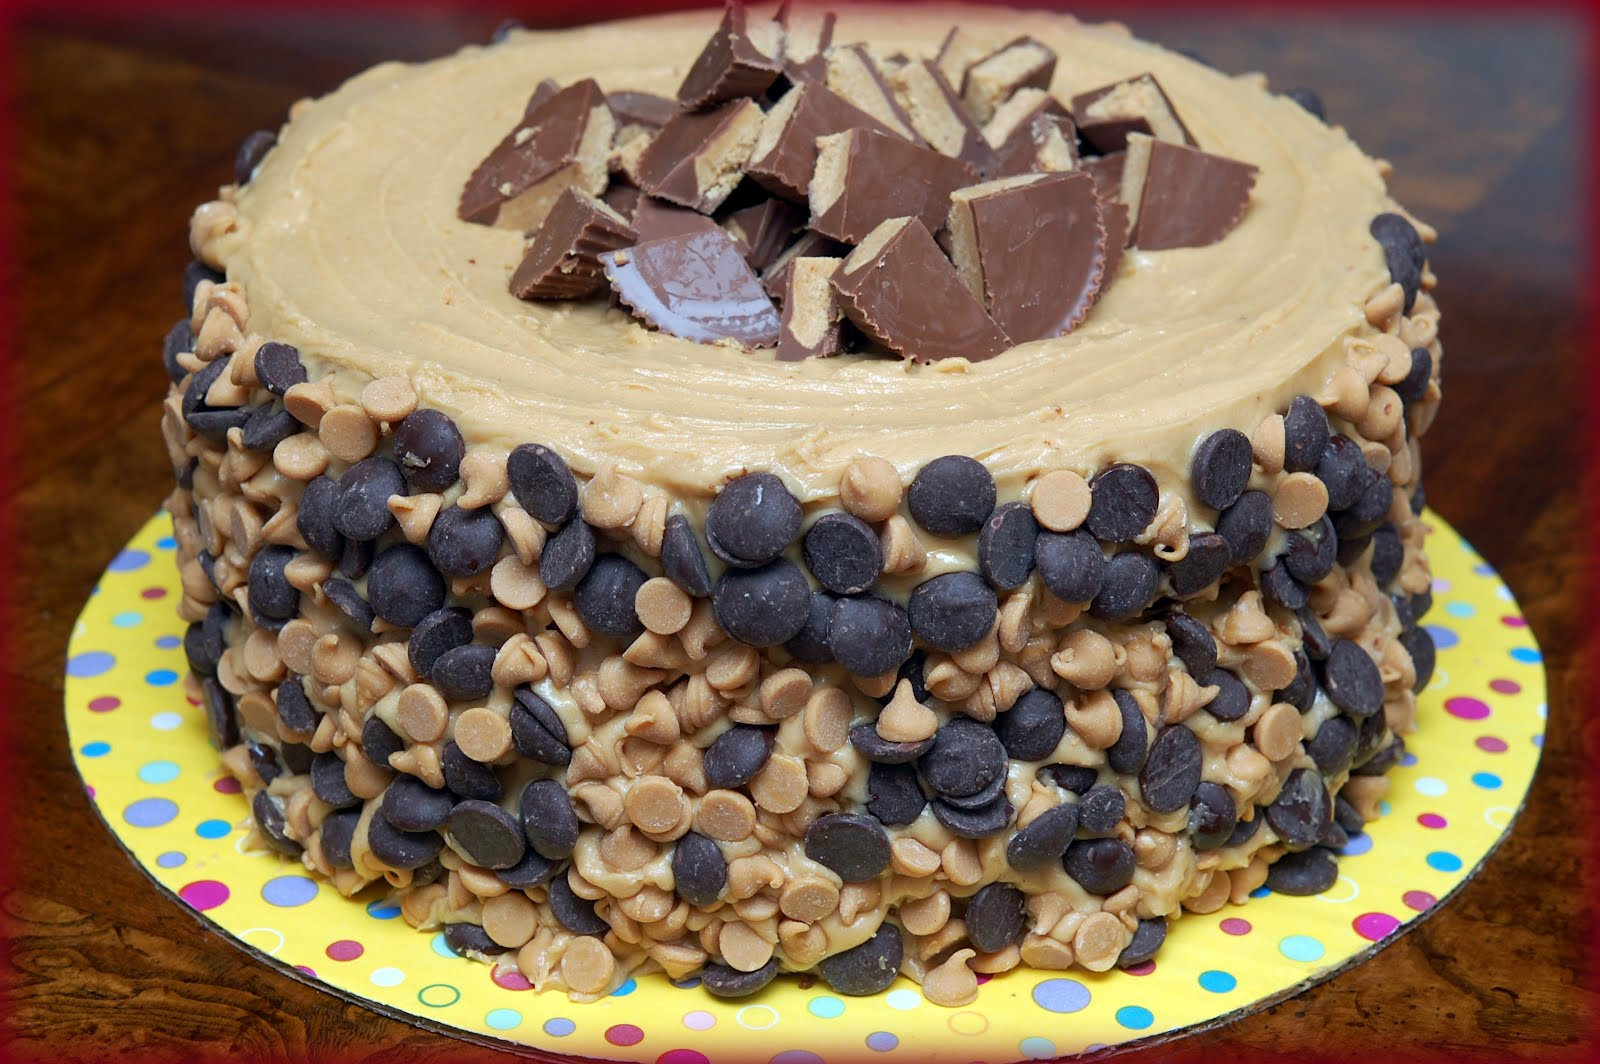 REESE'S OVERLOAD CAKE-2 PEANUT BUTTER BLONDIE LAYERS, 1 ...